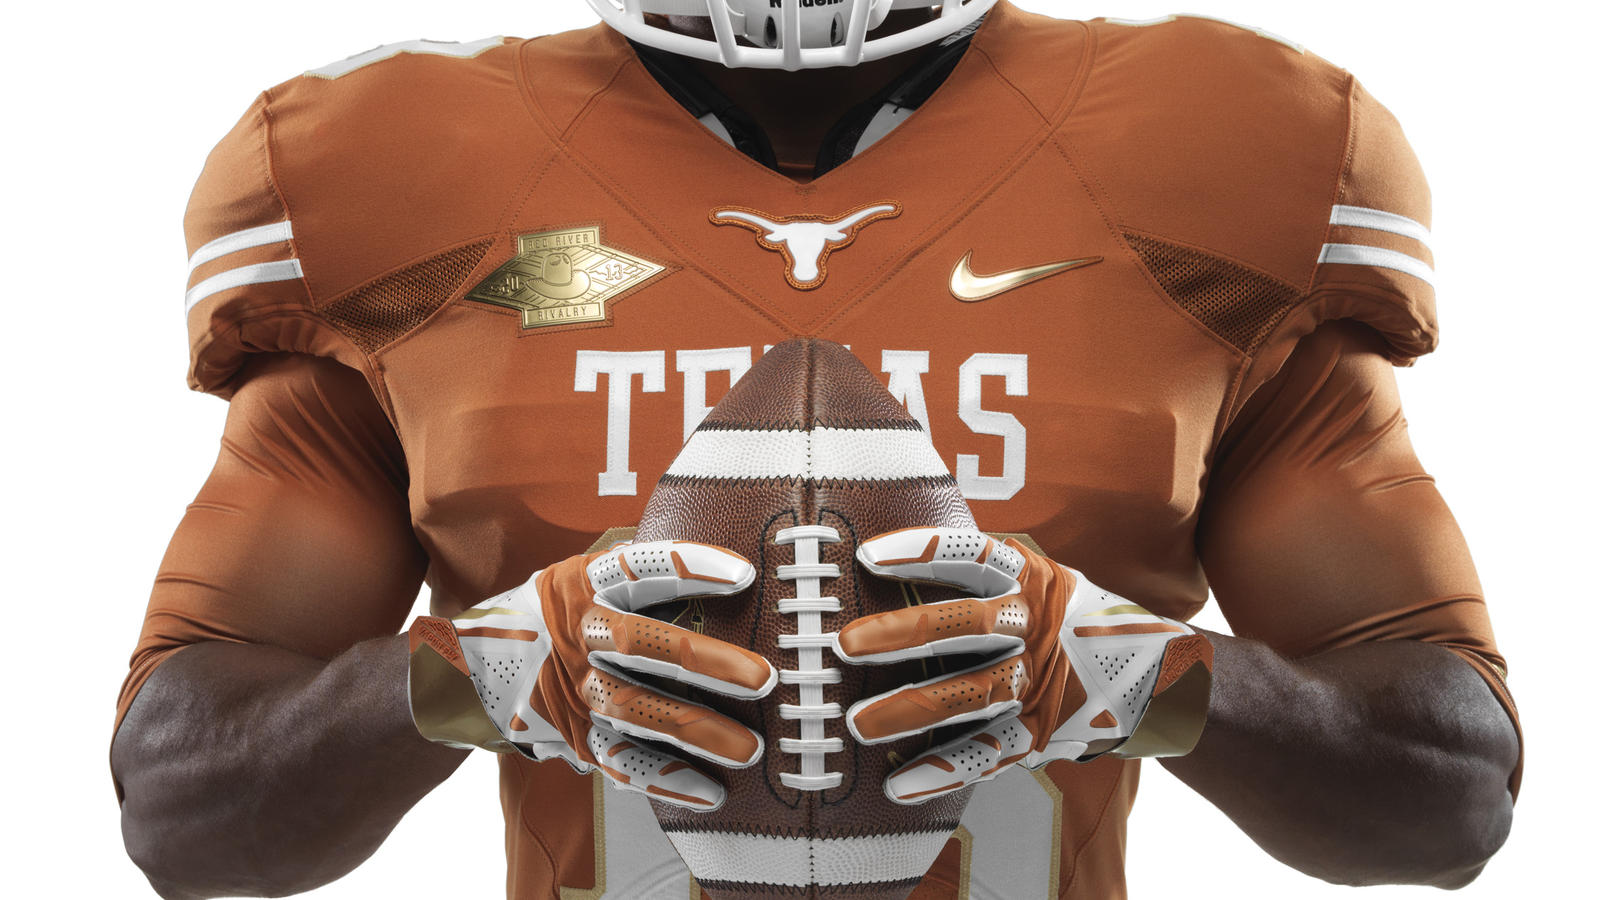 Ncaa Fb13 Uniforms Texas Sidetoside 0 Base 0000